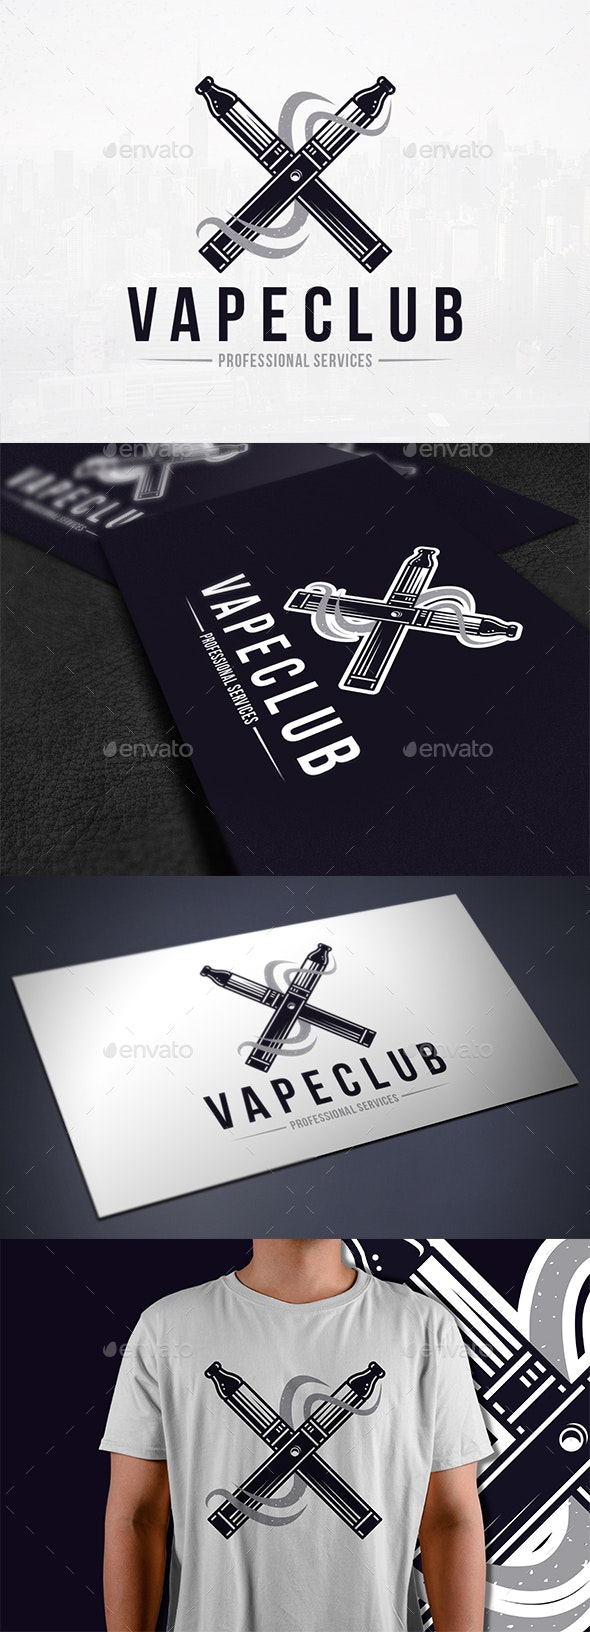 Vape Club Logo Template - Objects Logo Templates